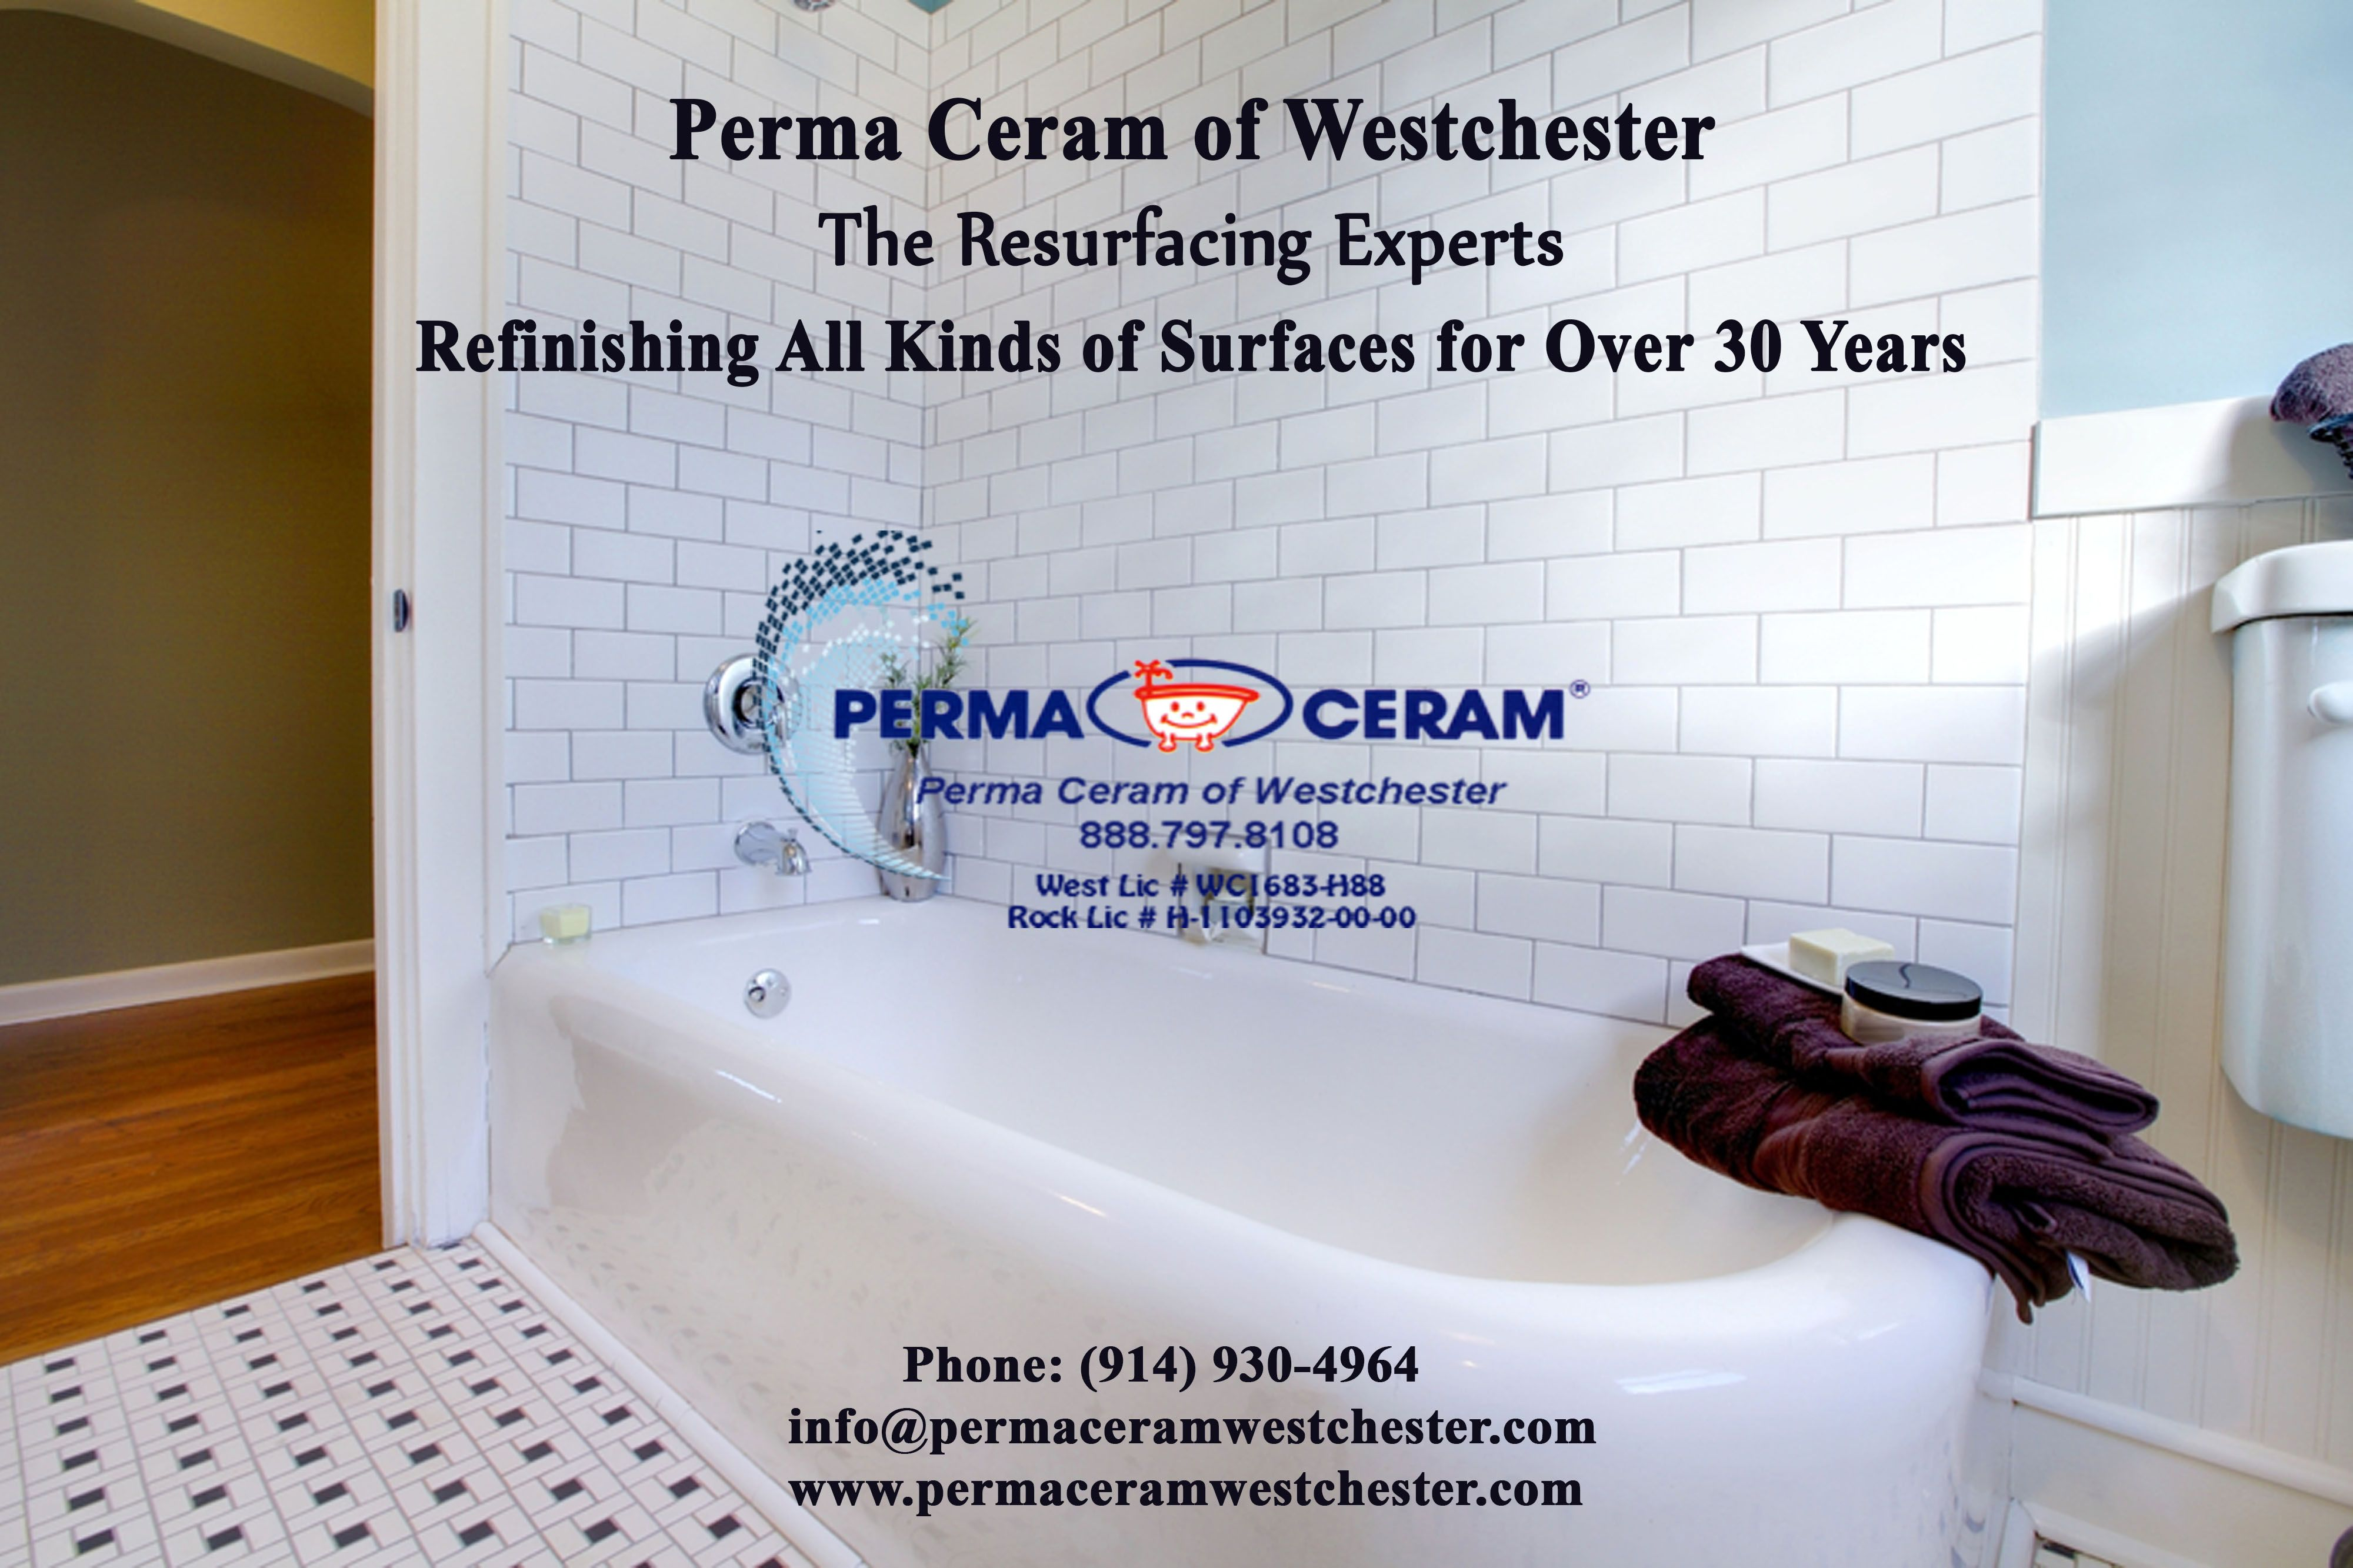 Perma Ceram of Westchester The Resurfacing Experts Refinishing All ...